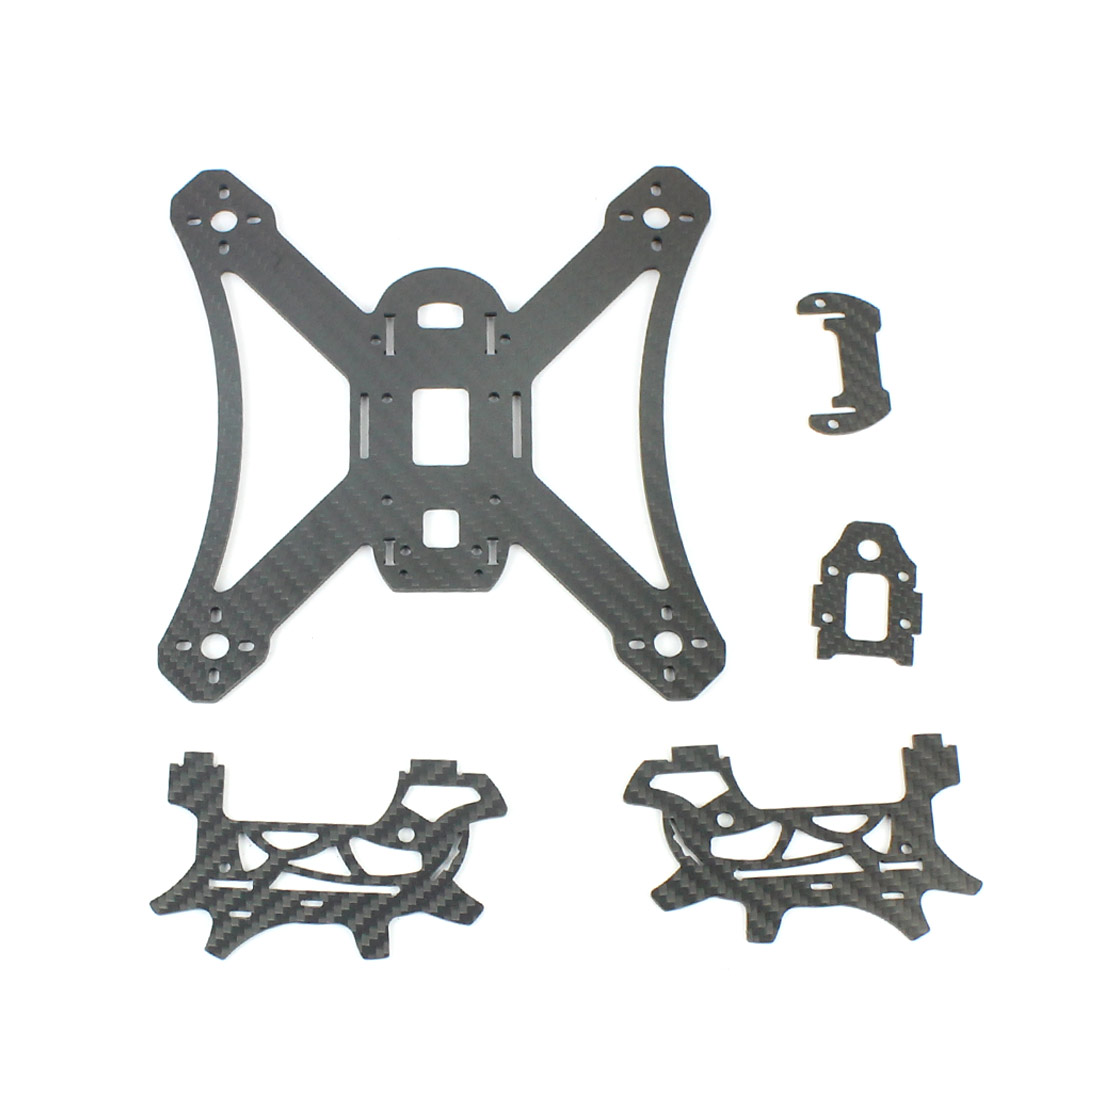 RAMMUS 180 180mm 210mm Frame Kit for DIY FPV RC Racing Drone KingKong Quadcopter Airplanes F19960